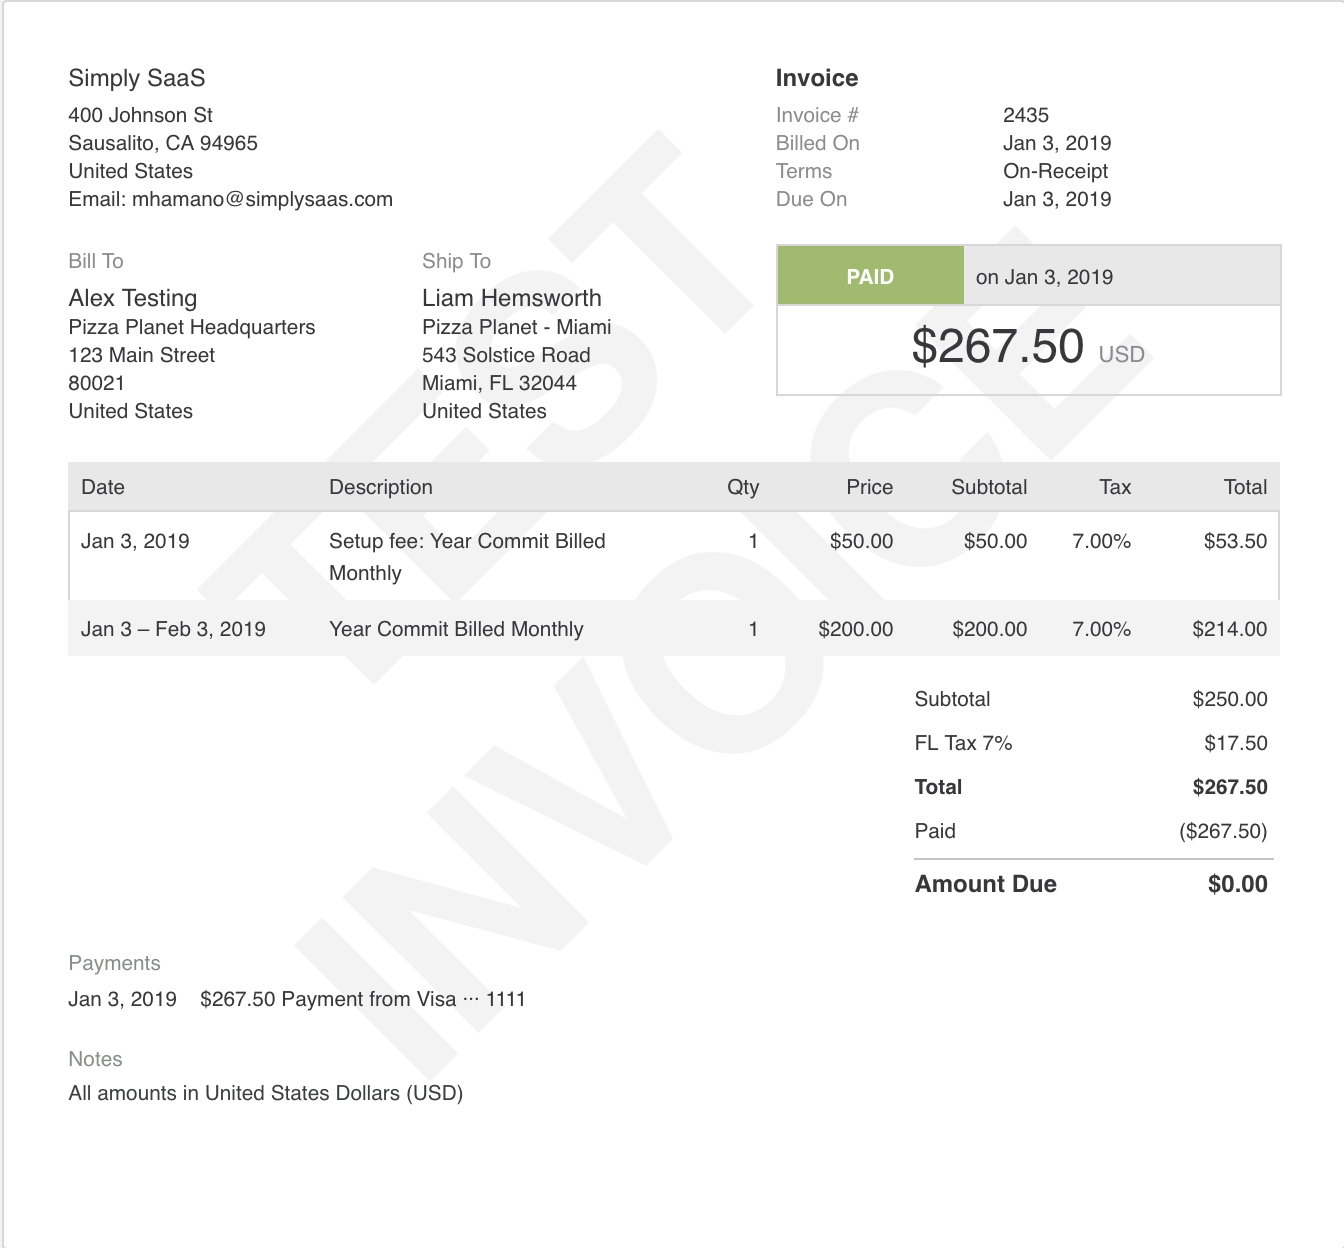 This parent invoice is taxed based on the shipping address of the Child account based on Colorado.